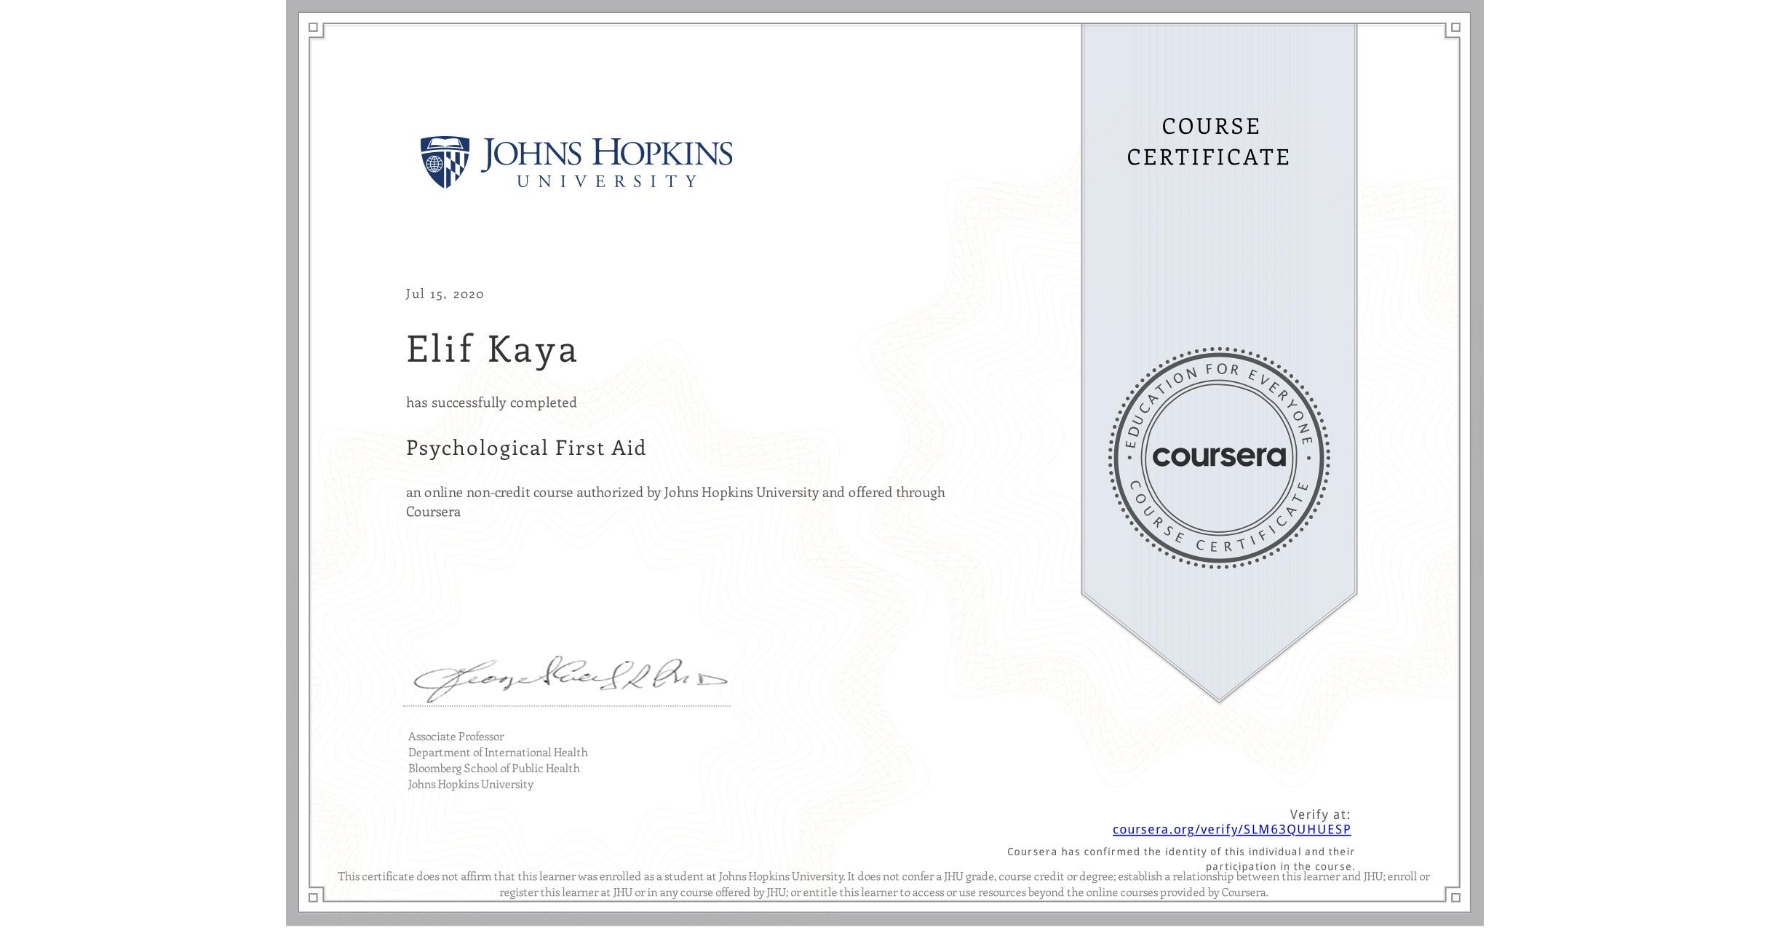 View certificate for Elif Kaya, Psychological First Aid, an online non-credit course authorized by Johns Hopkins University and offered through Coursera